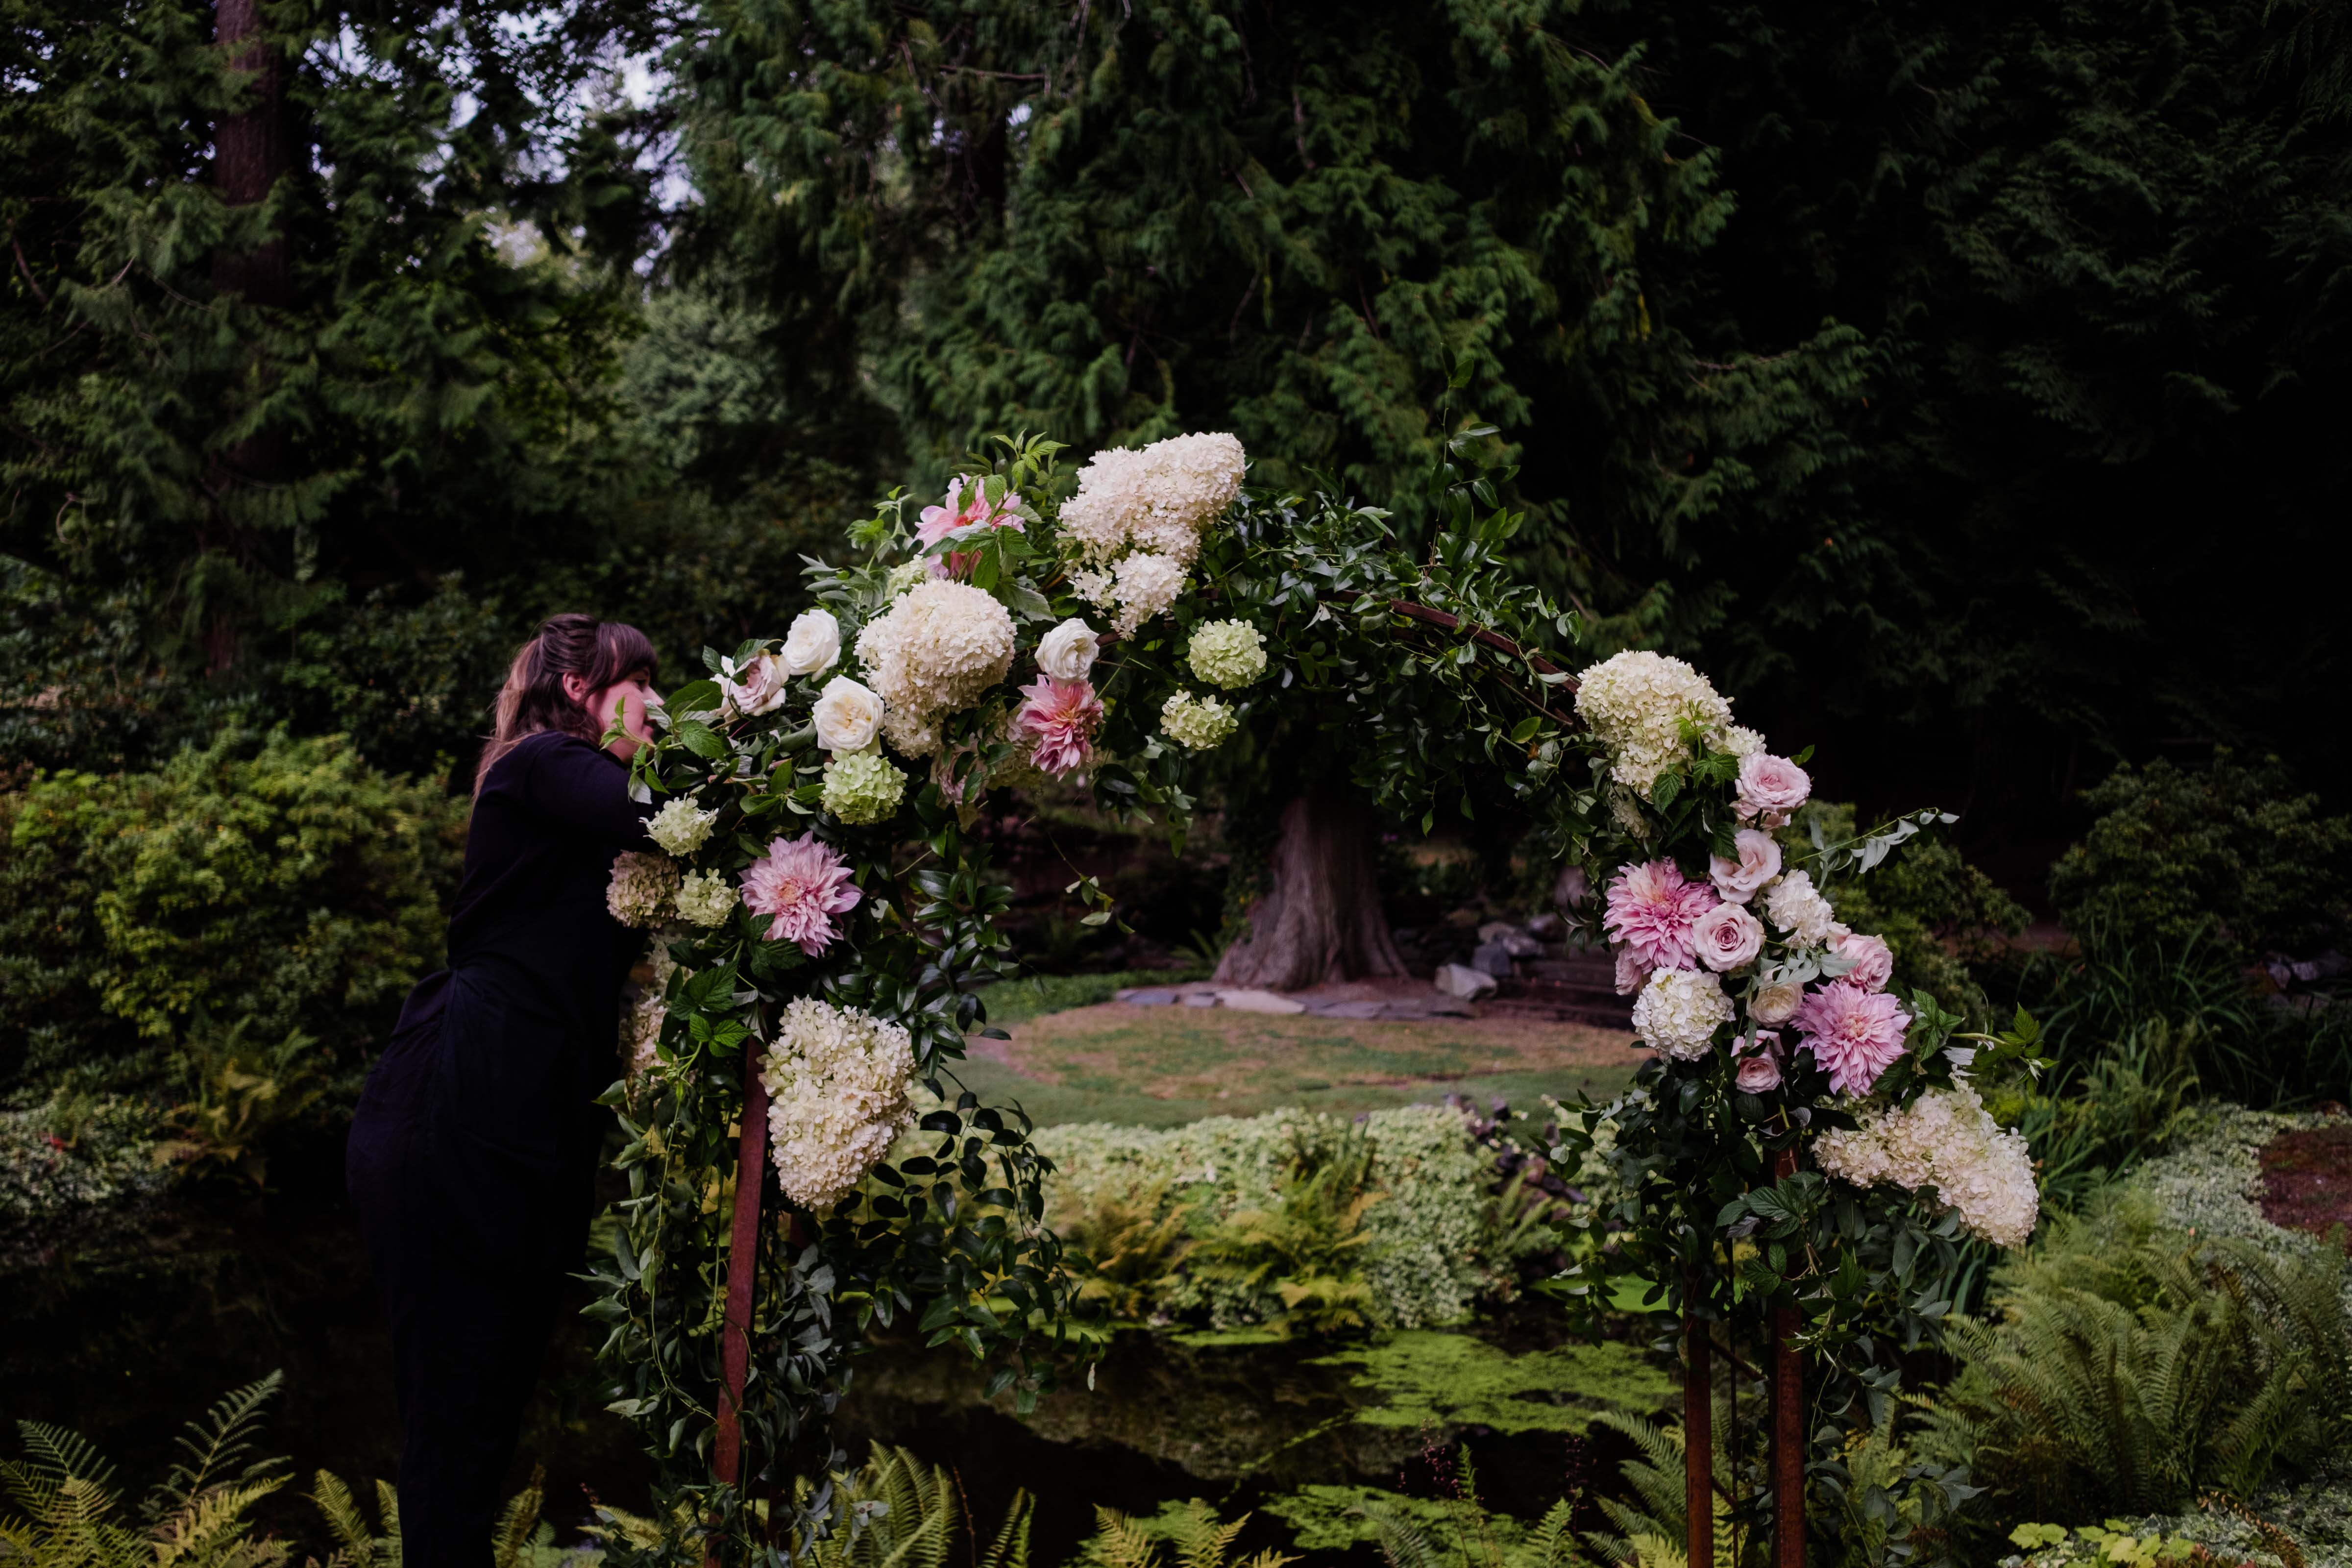 Designer adding the last touch to wedding arch - A Luxe Chateau Lill Wedding designed by Flora Nova Design Seattle